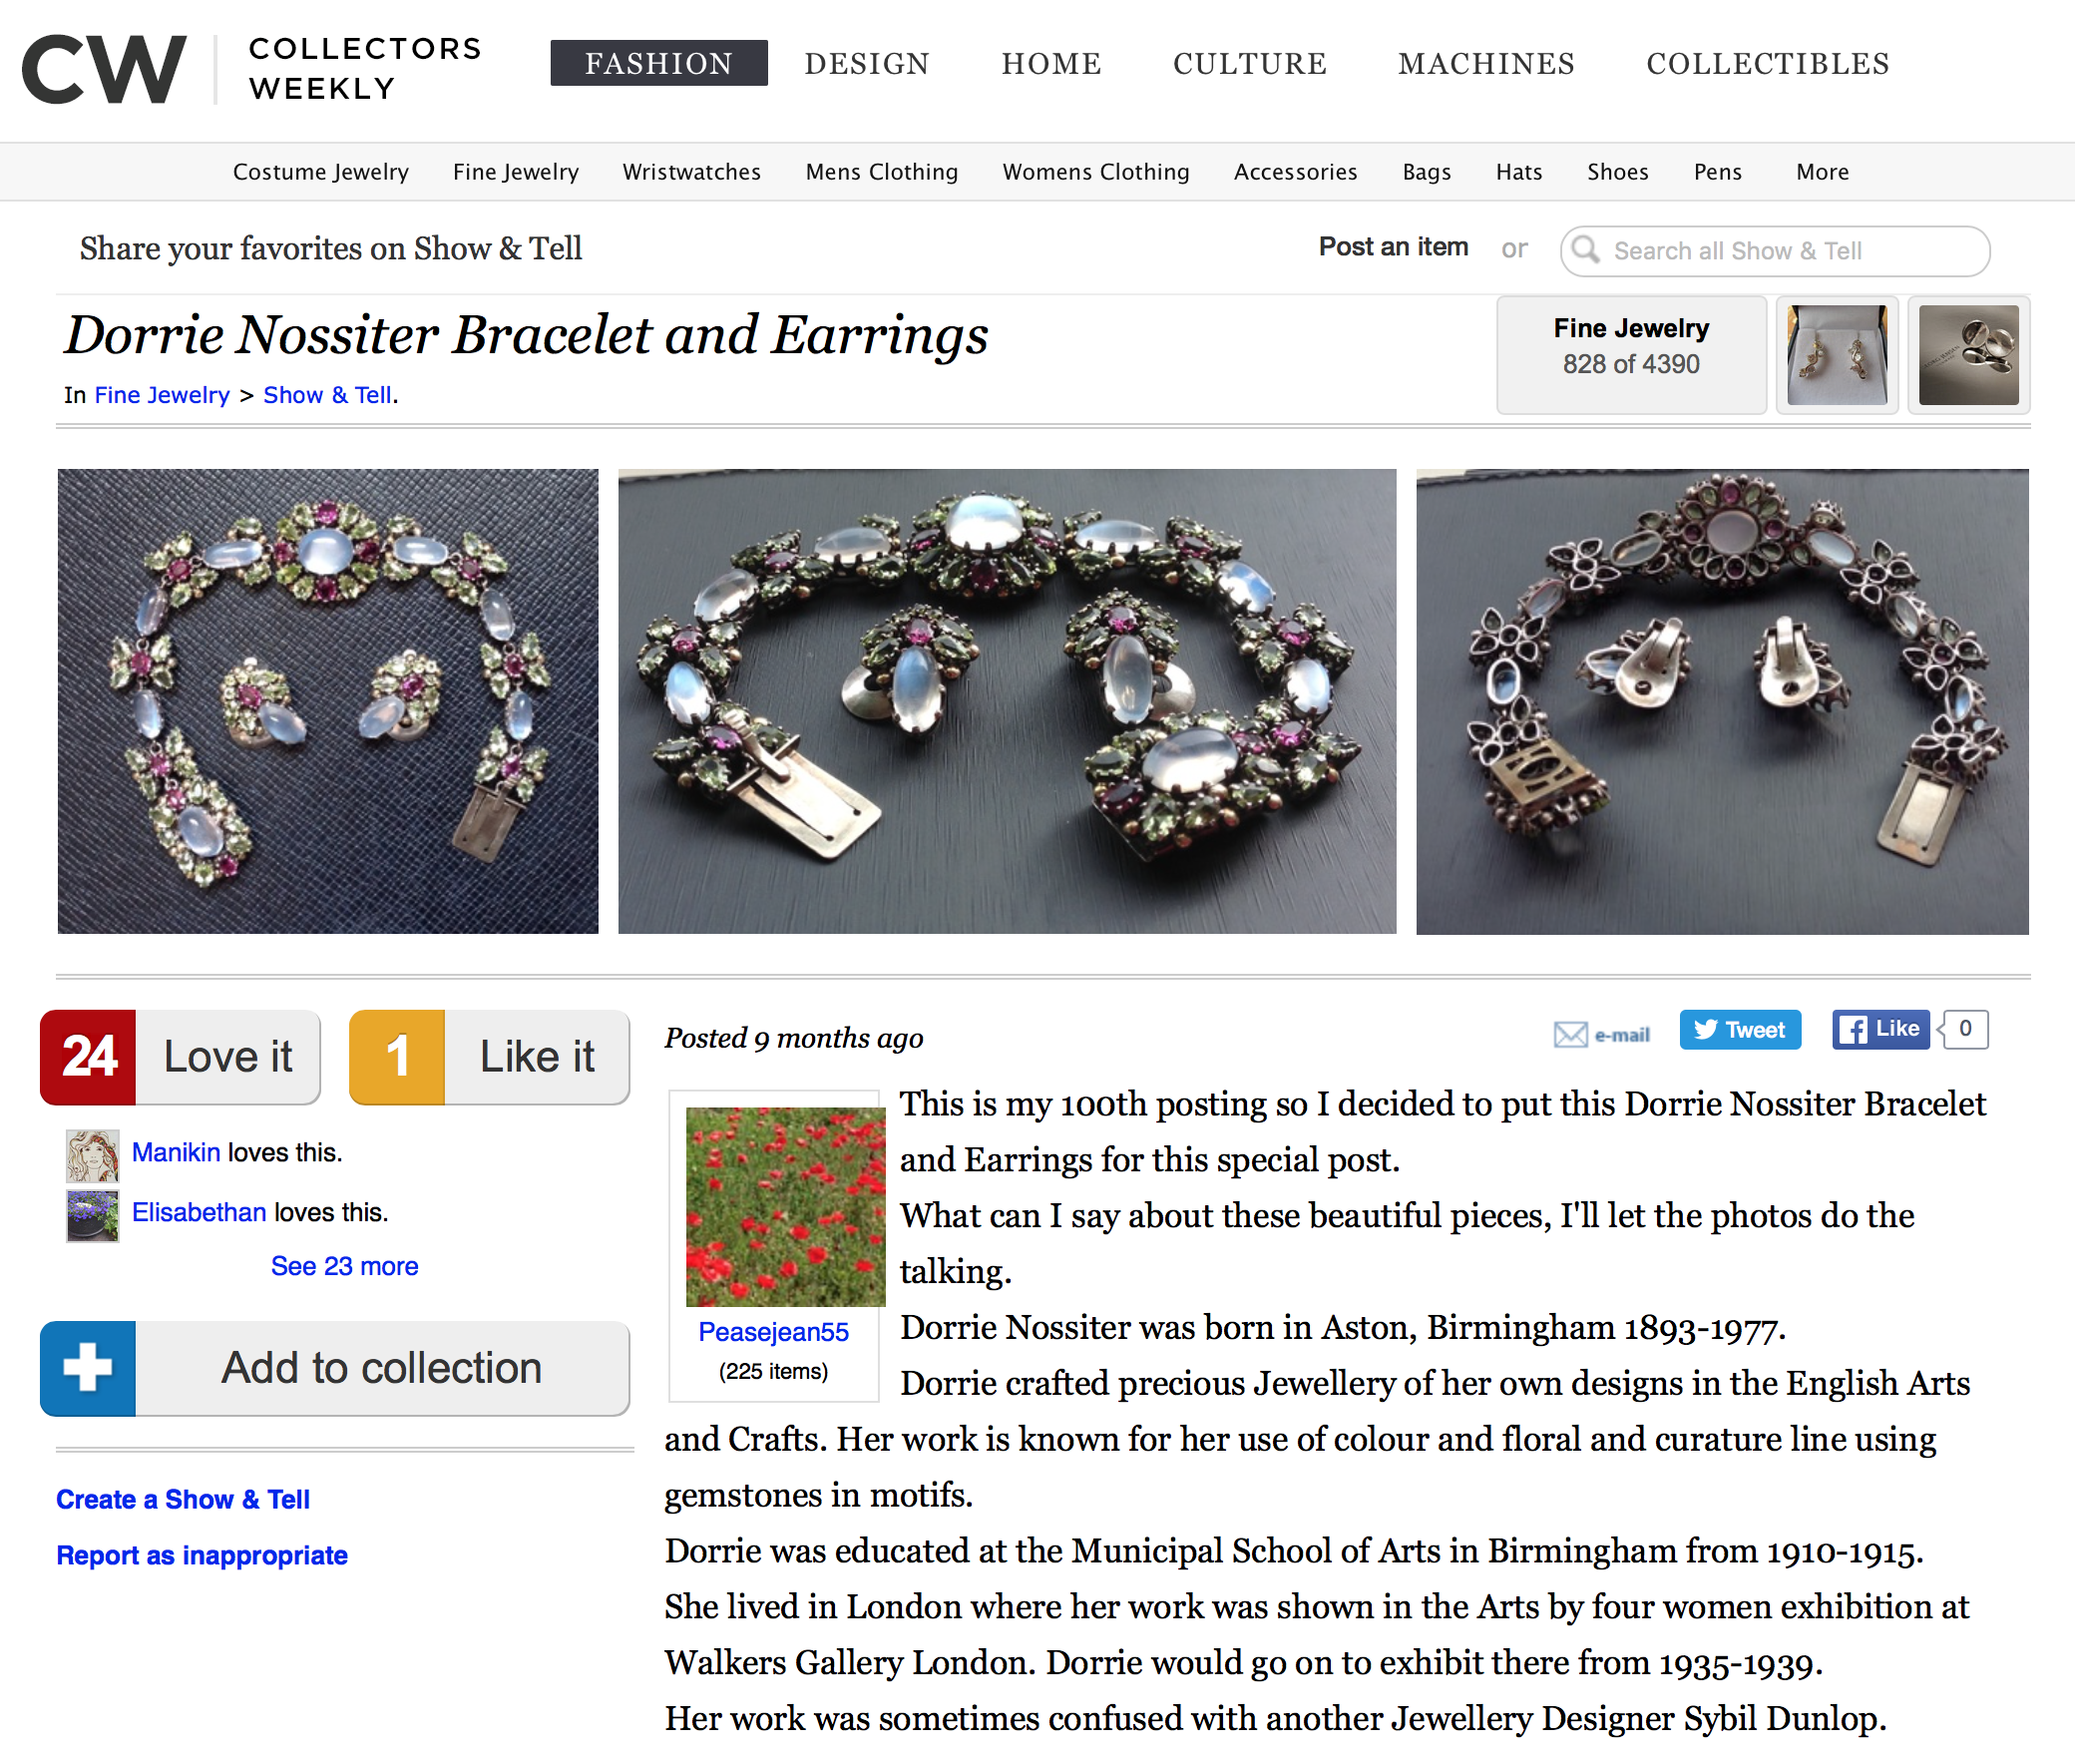 Screen capture of website discussing Dorrie's jewellery